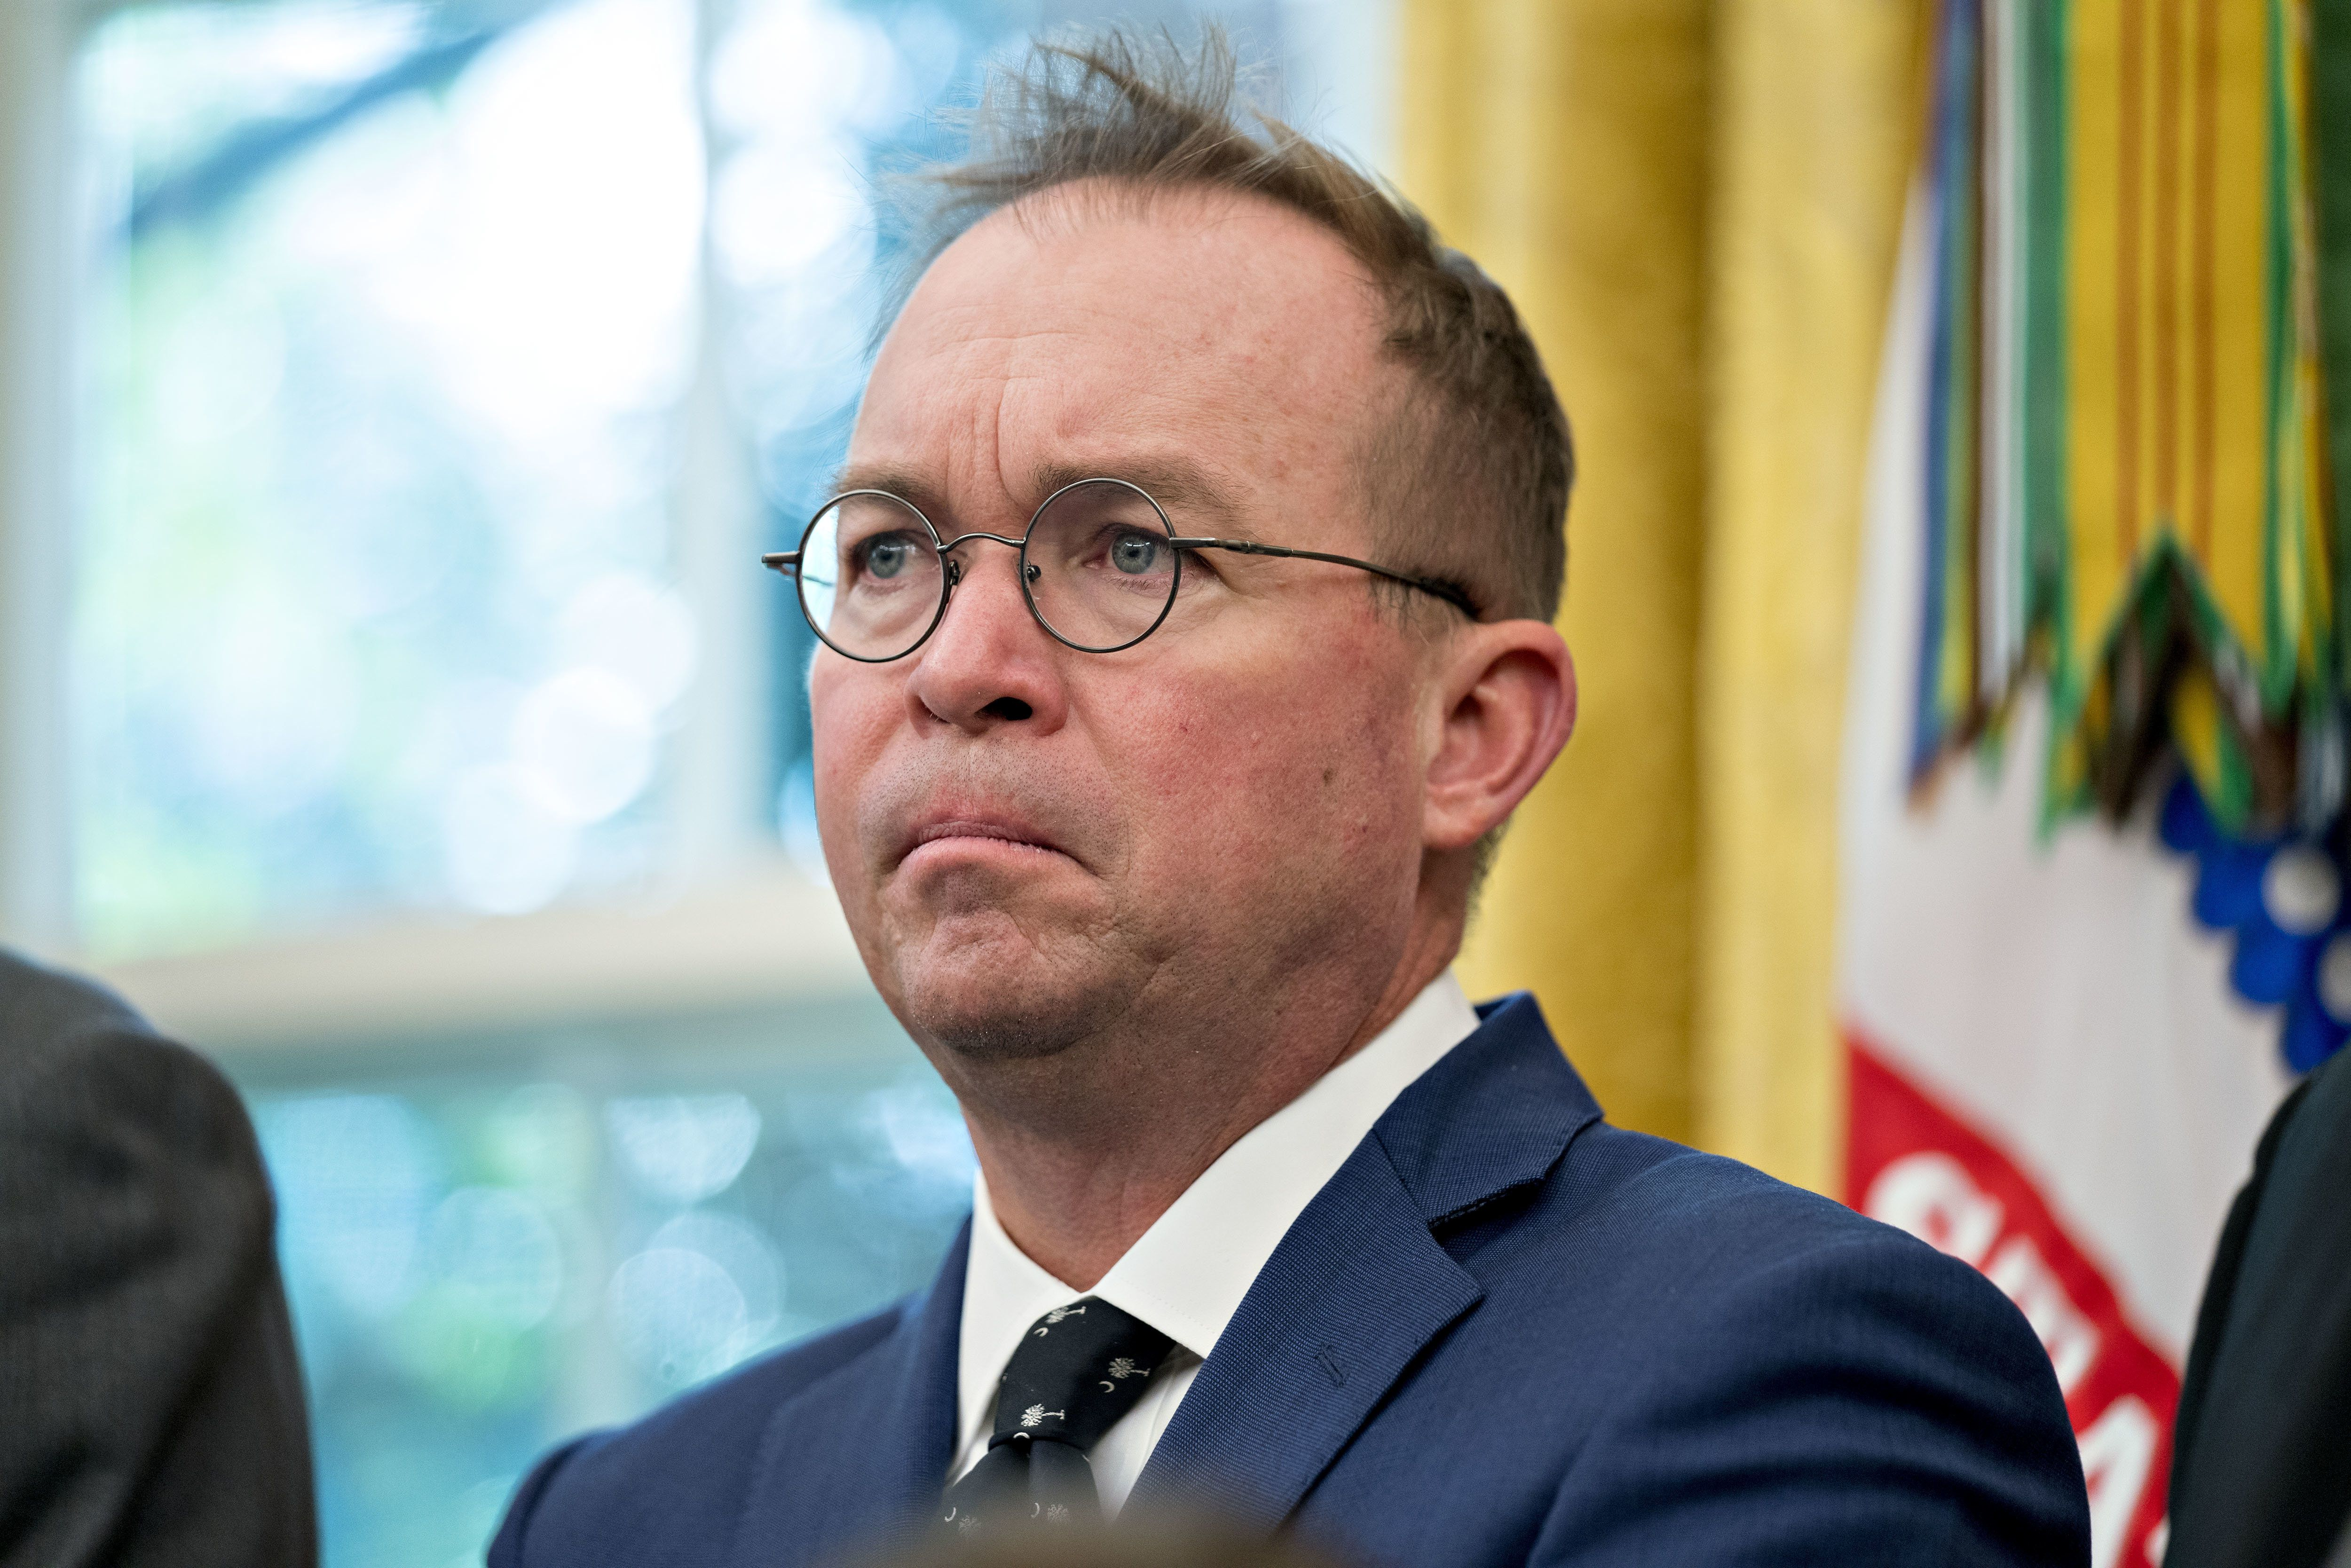 Mick Mulvaney, director of the Office of Management and Budget (OMB), listens during a meeting with U.S. President Donald Trump, not pictured, and workers in the Oval Office of the White House during a 'Cutting the Red Tape, Unleashing Economic Freedom' event in Washington, D.C, U.S., on Wednesday, Oct. 17, 2018. Trump plans to withdraw the U.S. from a treaty that gives Chinese companies discounted shipping rates for small packages sent to American consumers, another escalation of his economic confrontation of Beijing. Photographer: Andrew Harrer/Bloomberg via Getty Images